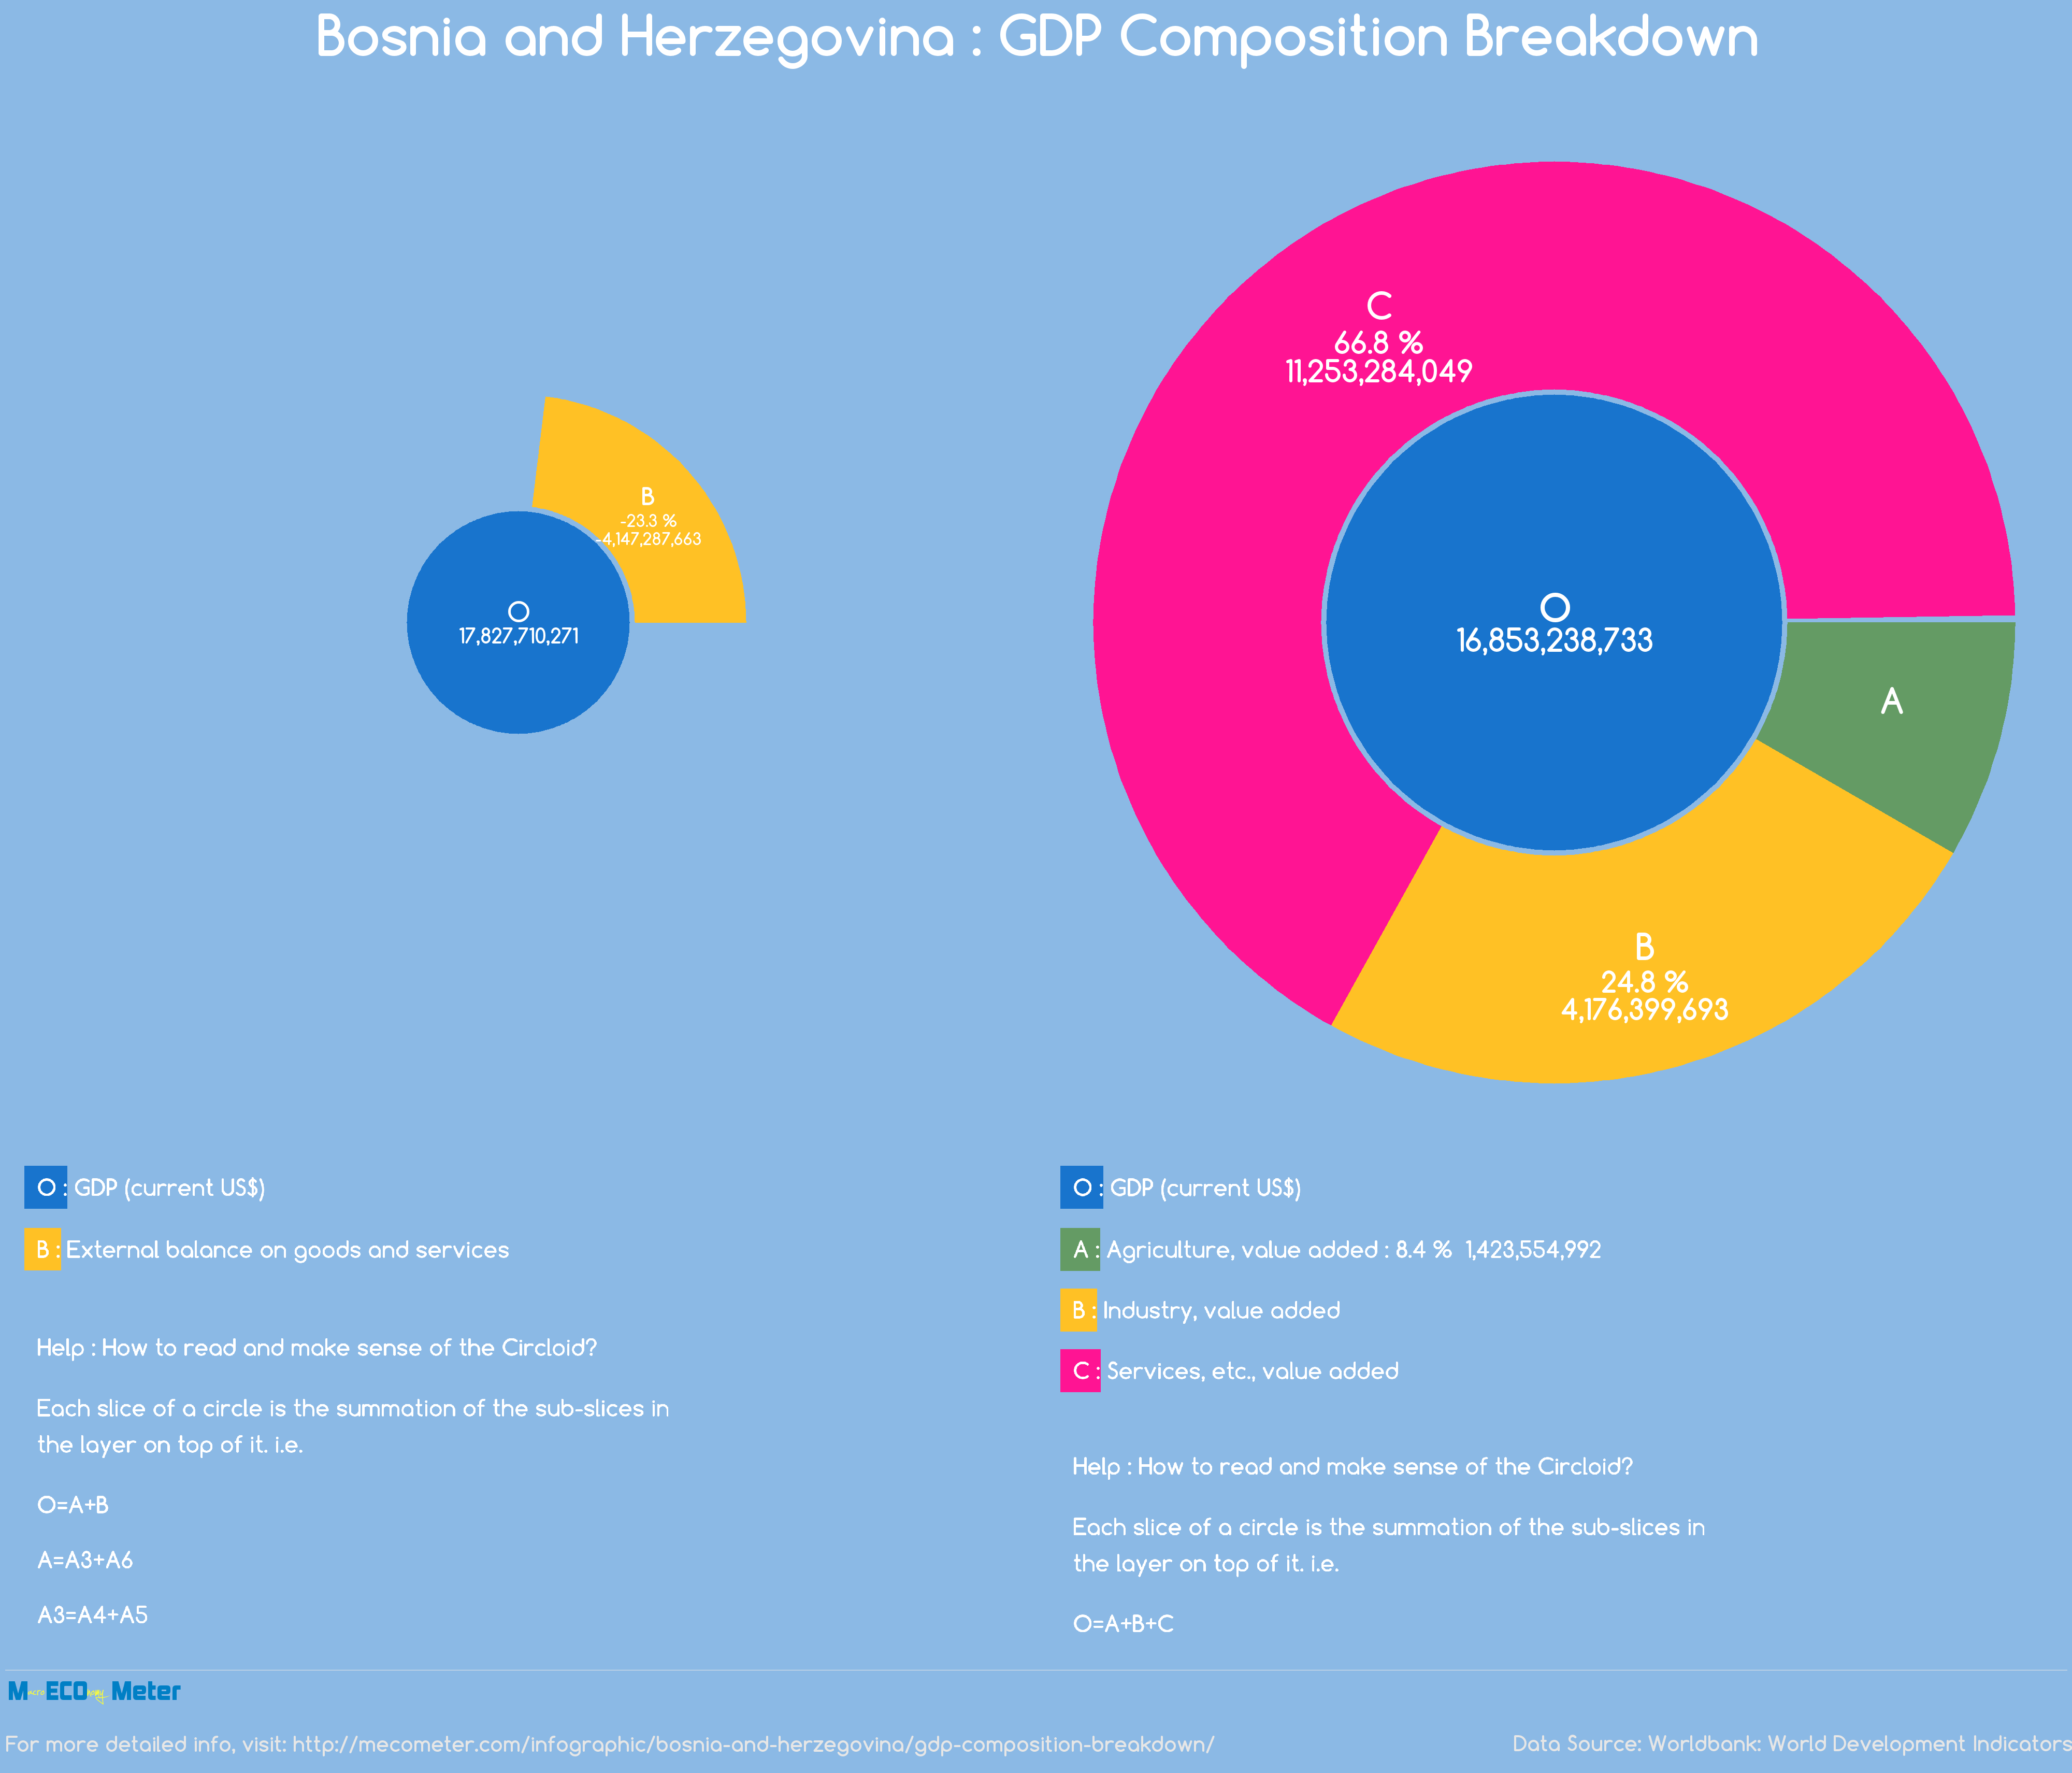 Bosnia and Herzegovina : GDP Composition Breakdown